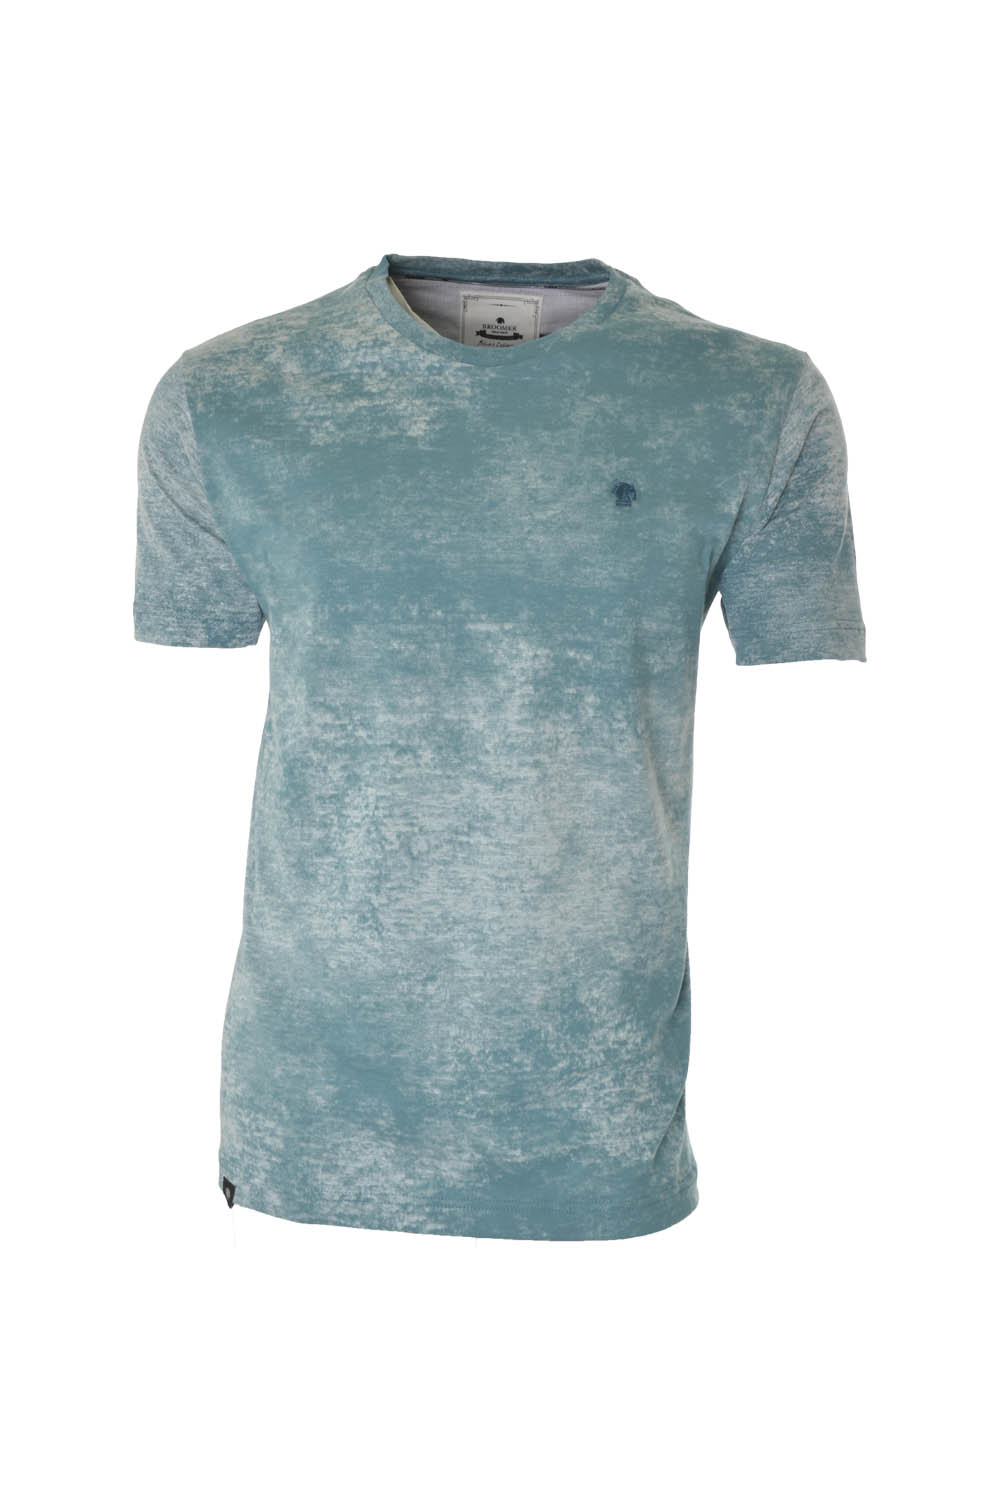 CAMISETA MC BLUES SUPER SLIM ALGODAO GOLA C TEXTURIZADO VERDE CLARO